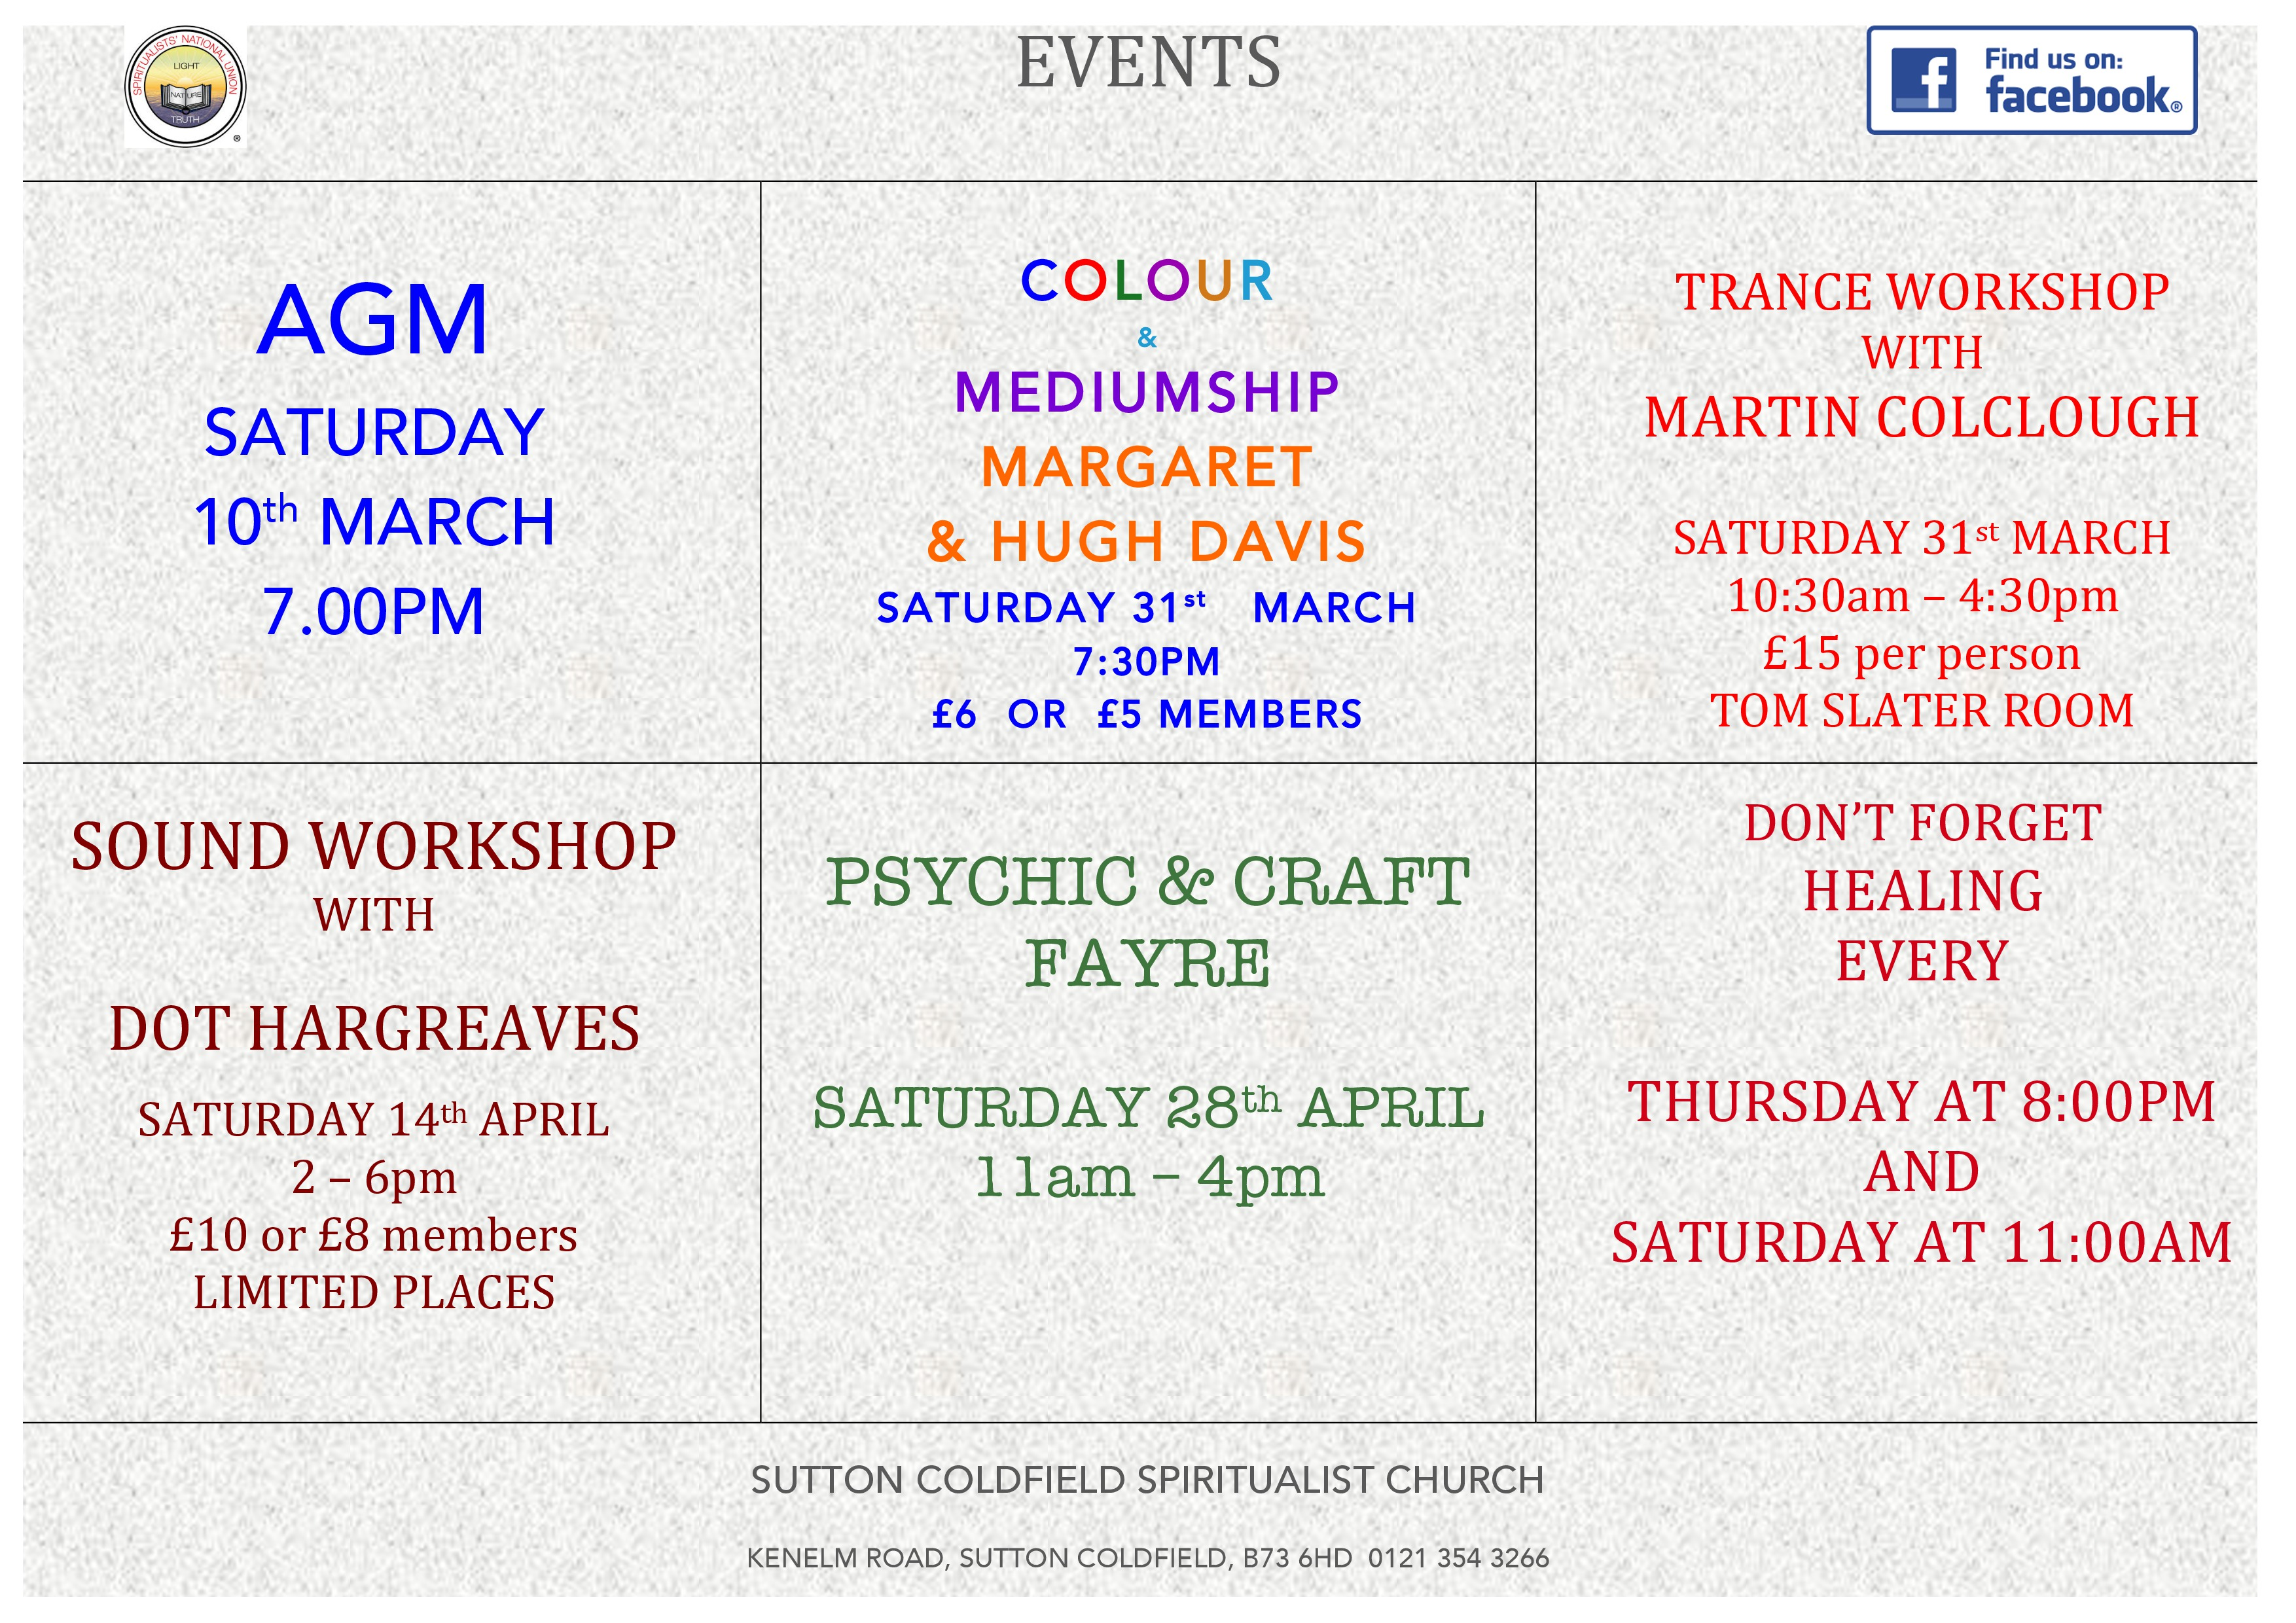 EVENTS march april 2018-page-0